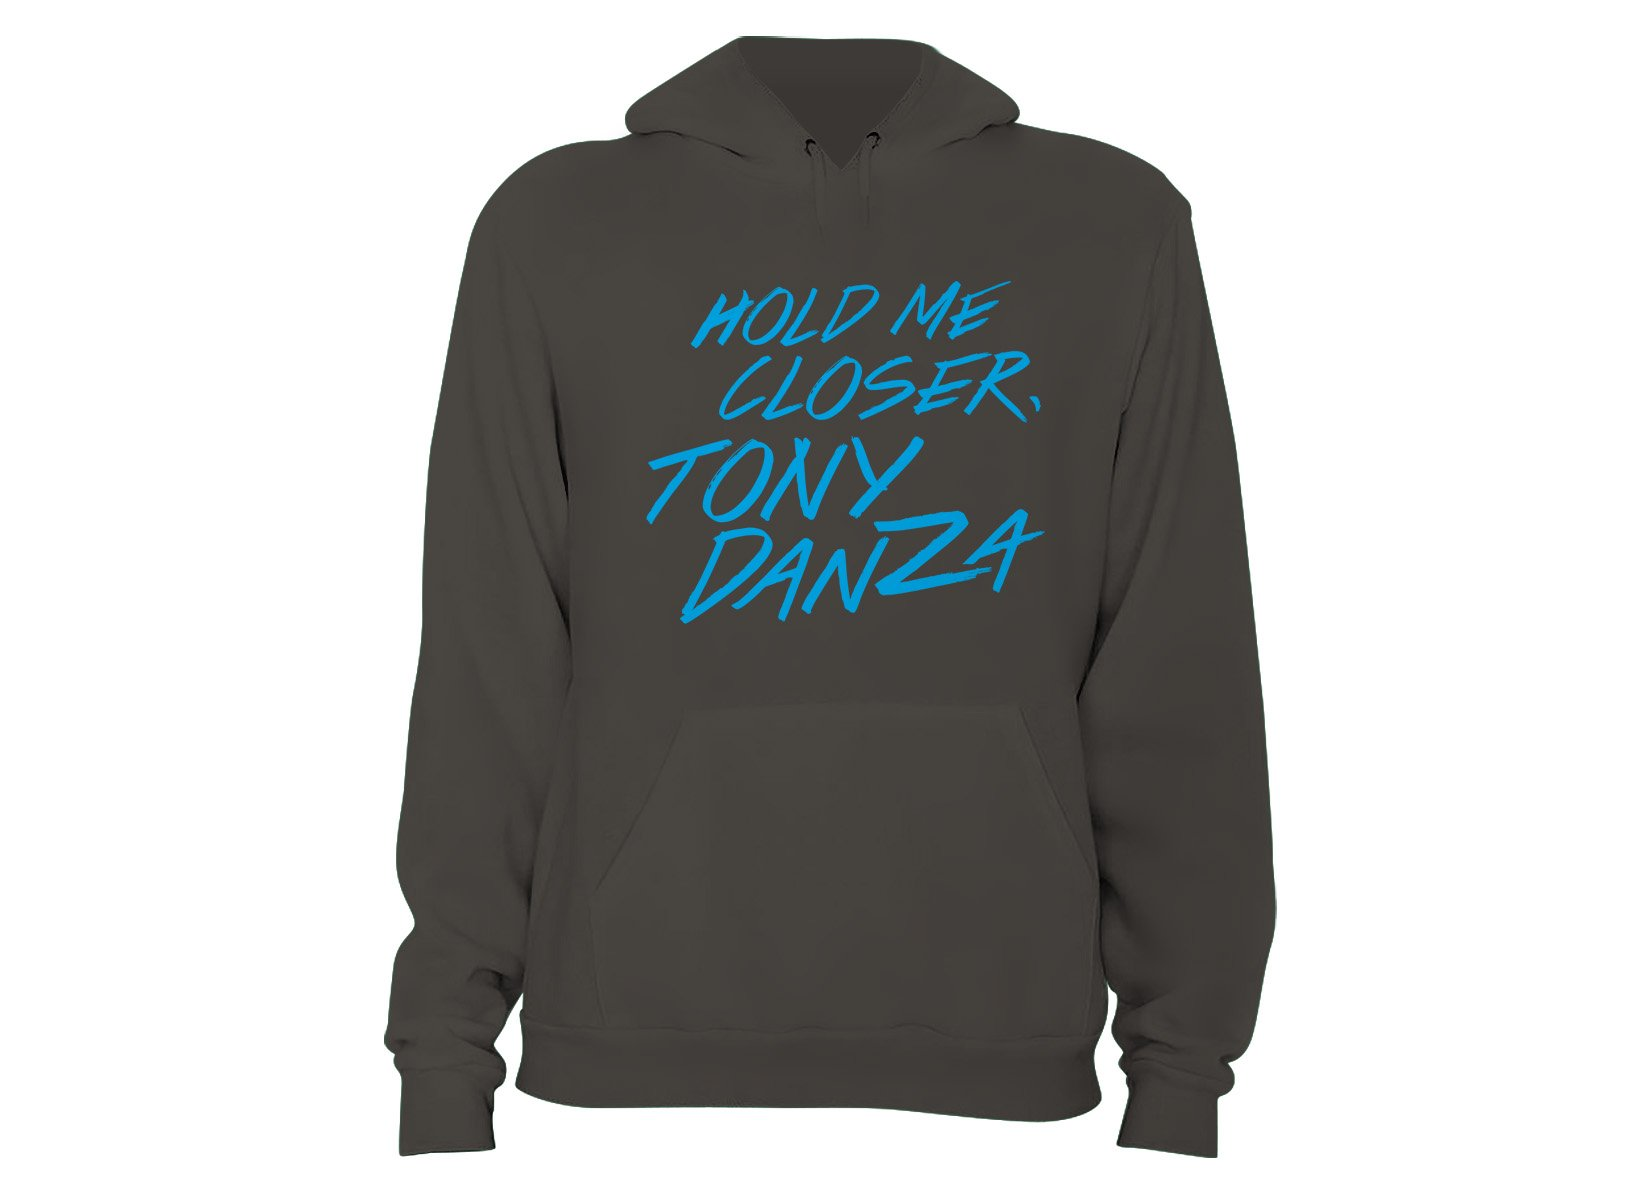 Hold Me Closer, Tony Danza on Hoodie